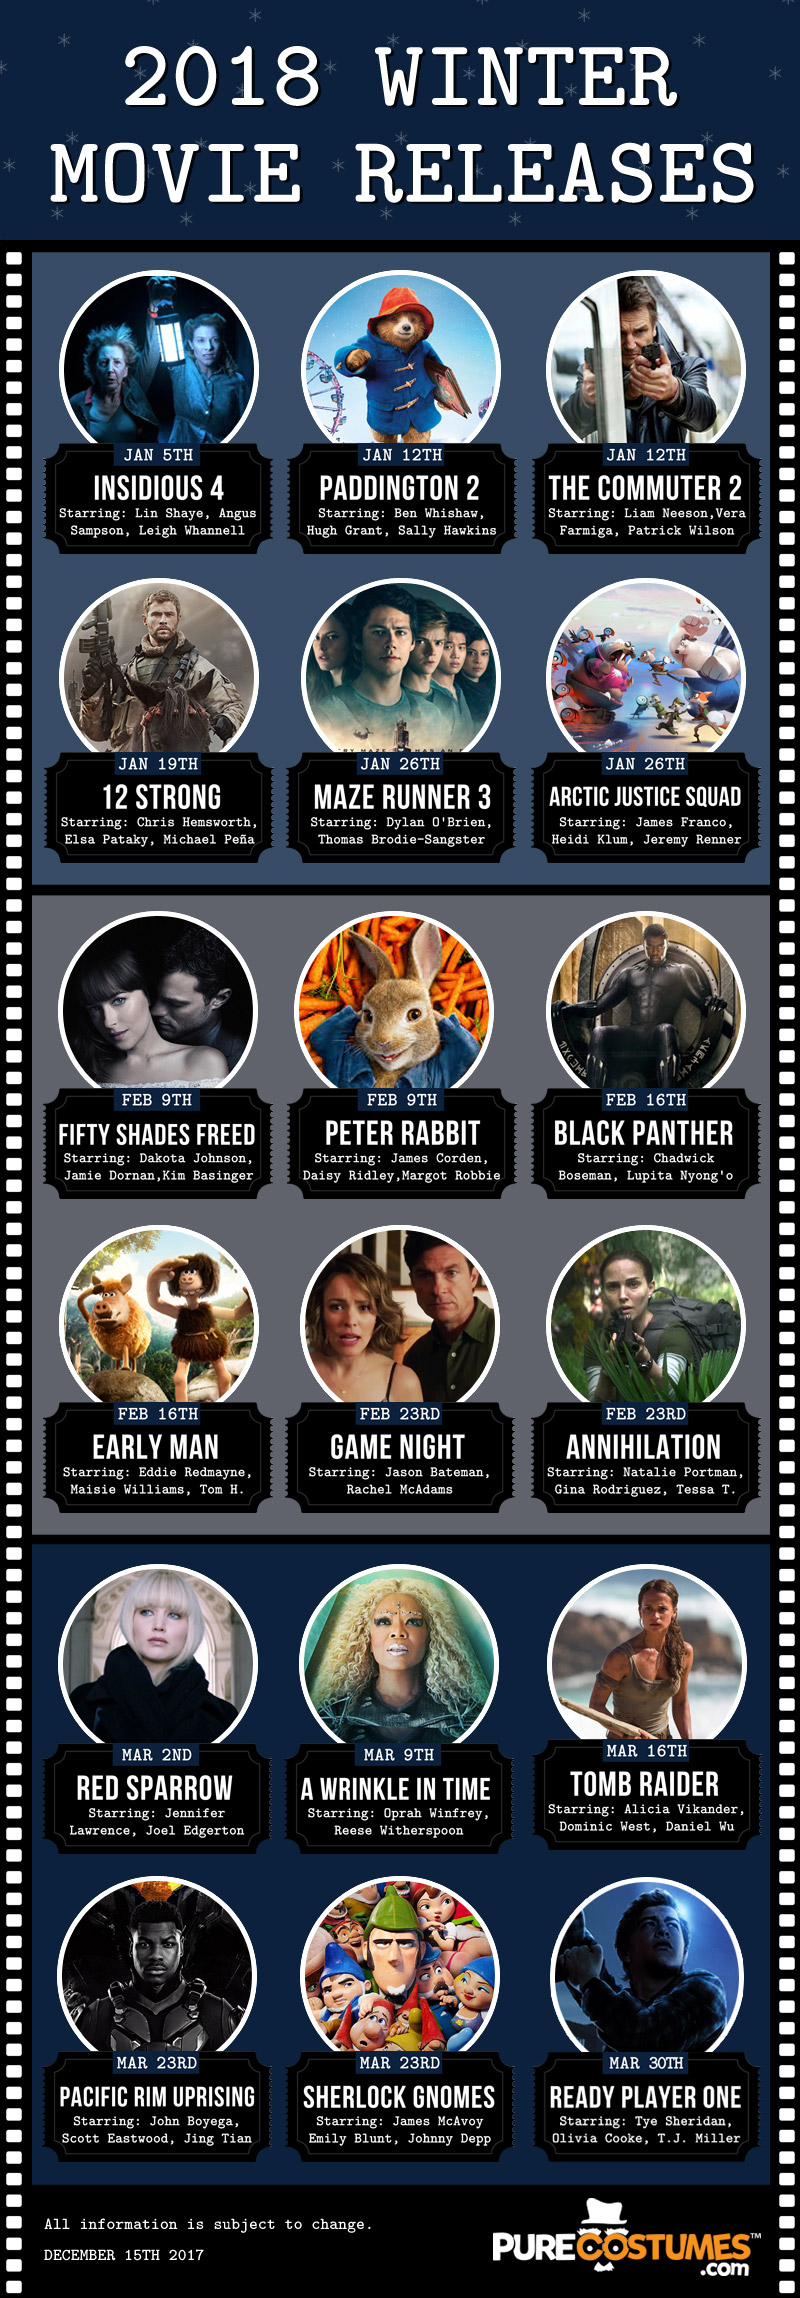 Infographic: 2018 Winter Movie Releases